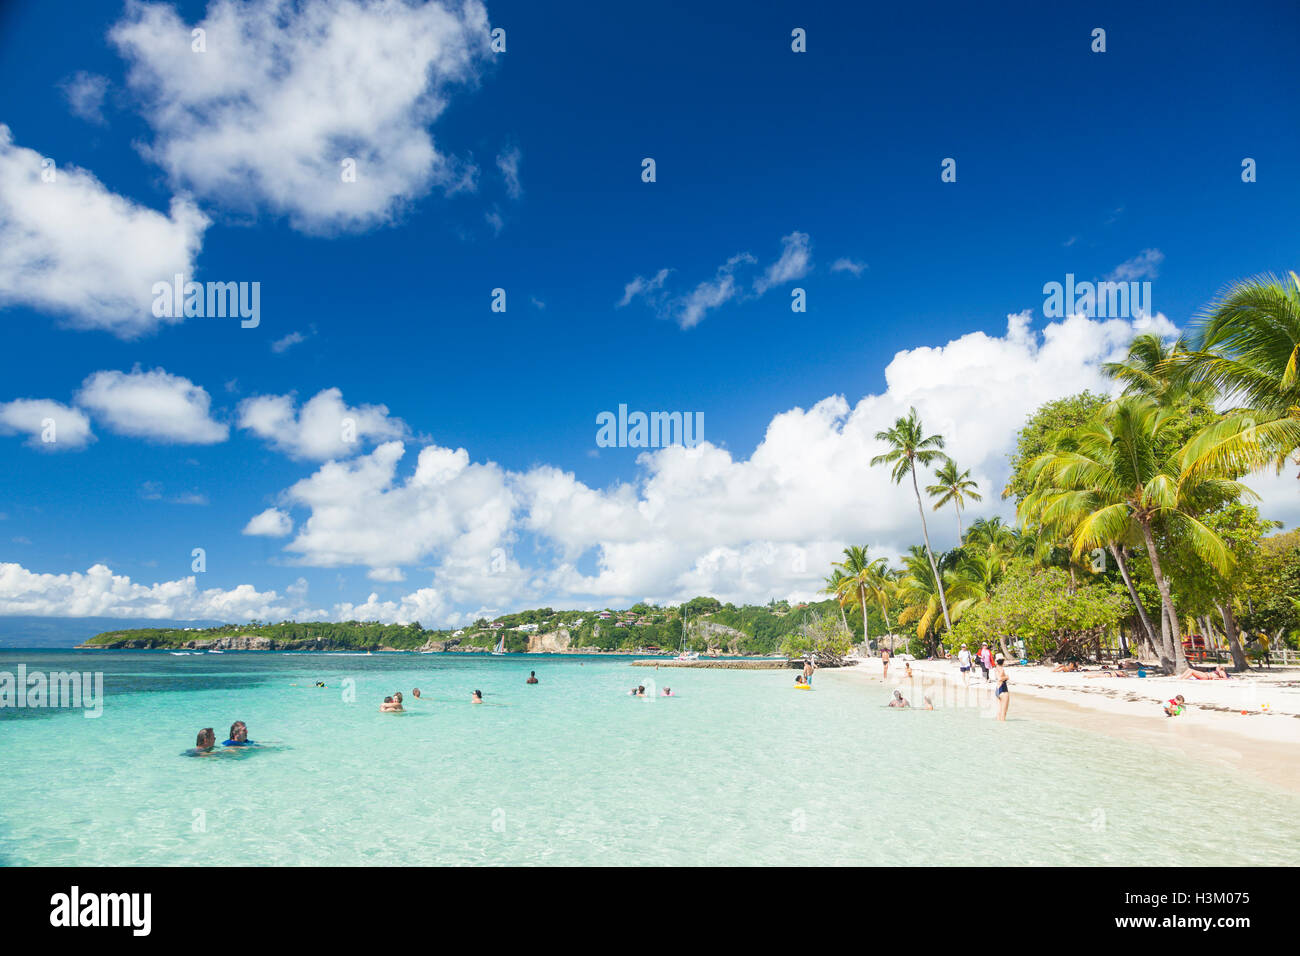 People at the beach of Club Med La Caravelle, Grande-Terre, Guadeloupe - Stock Image